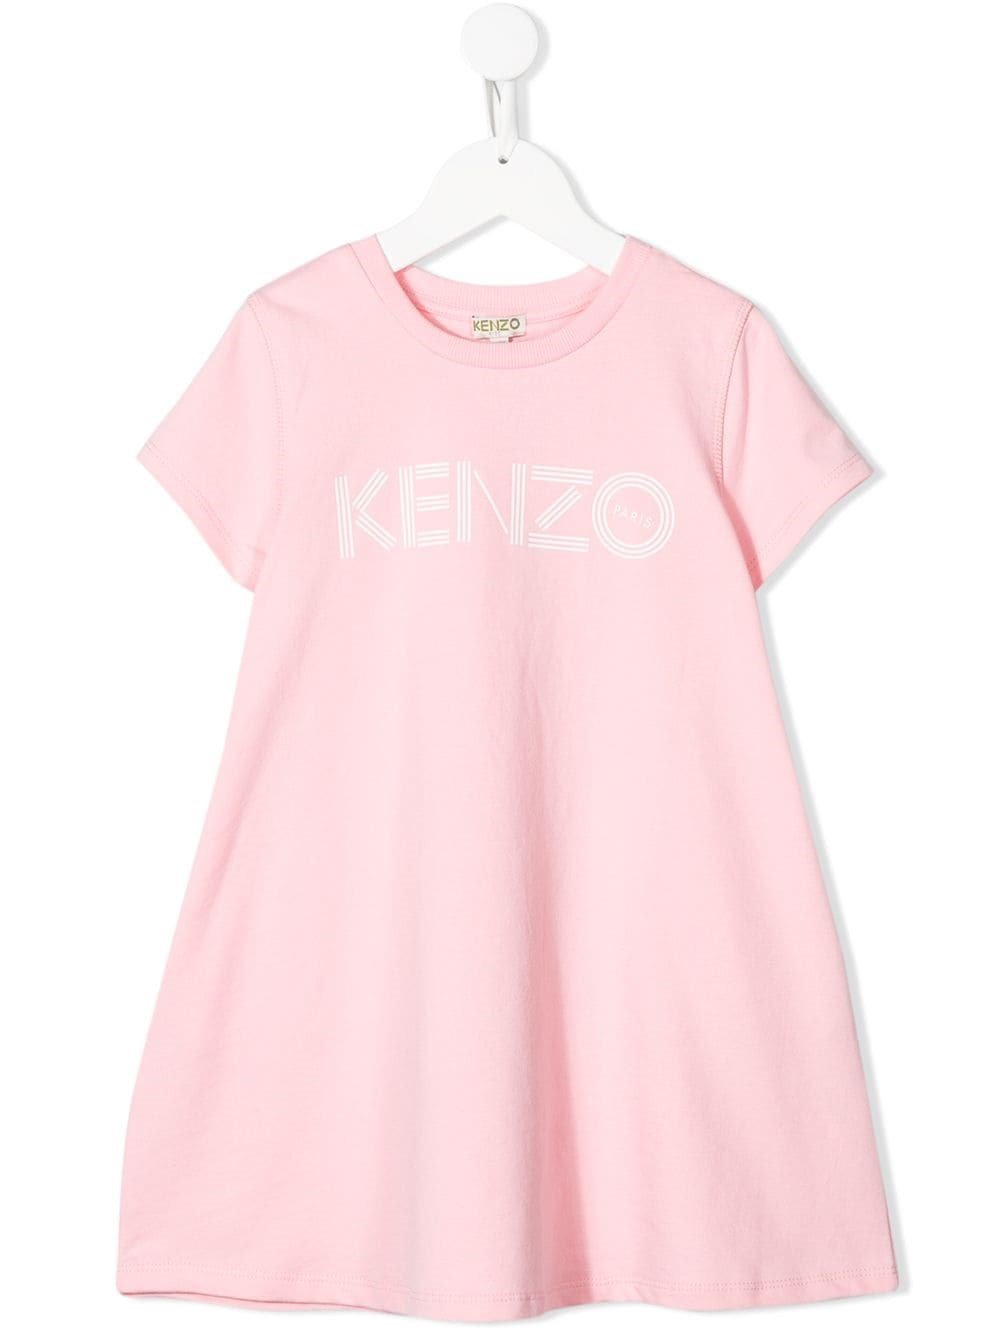 L Armadio Che Scoppia Baby Vintage Boutique.Kenzo Kids Logo Dress 2 6y Available On Montiboutique Com 32626